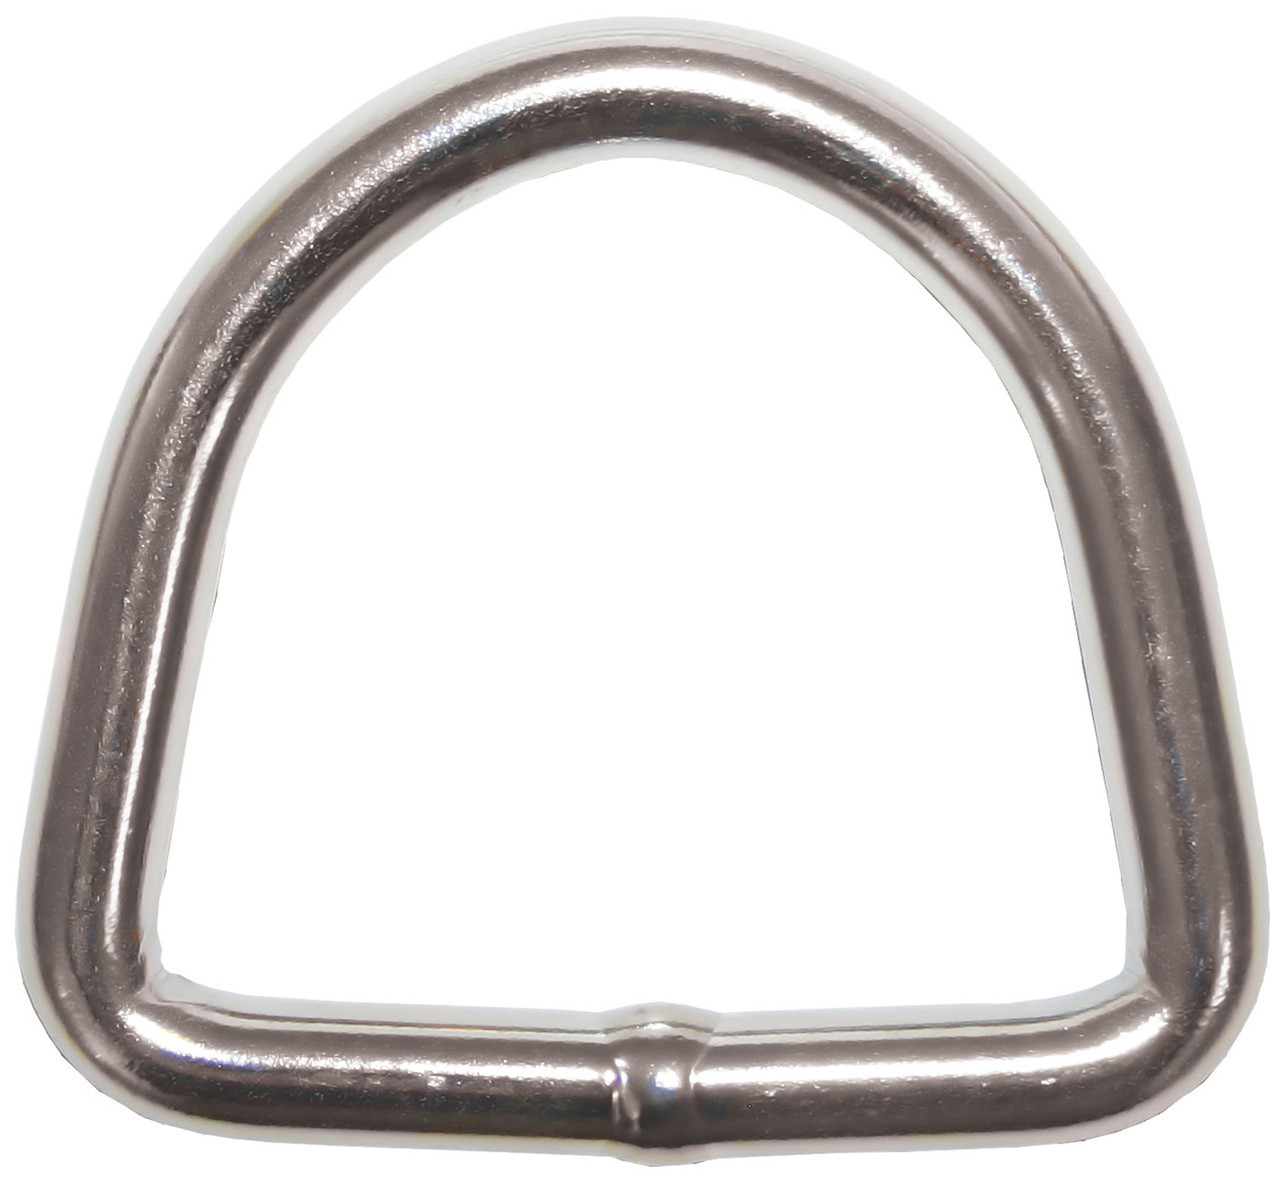 Dee Ring S/S 4 x 25mm